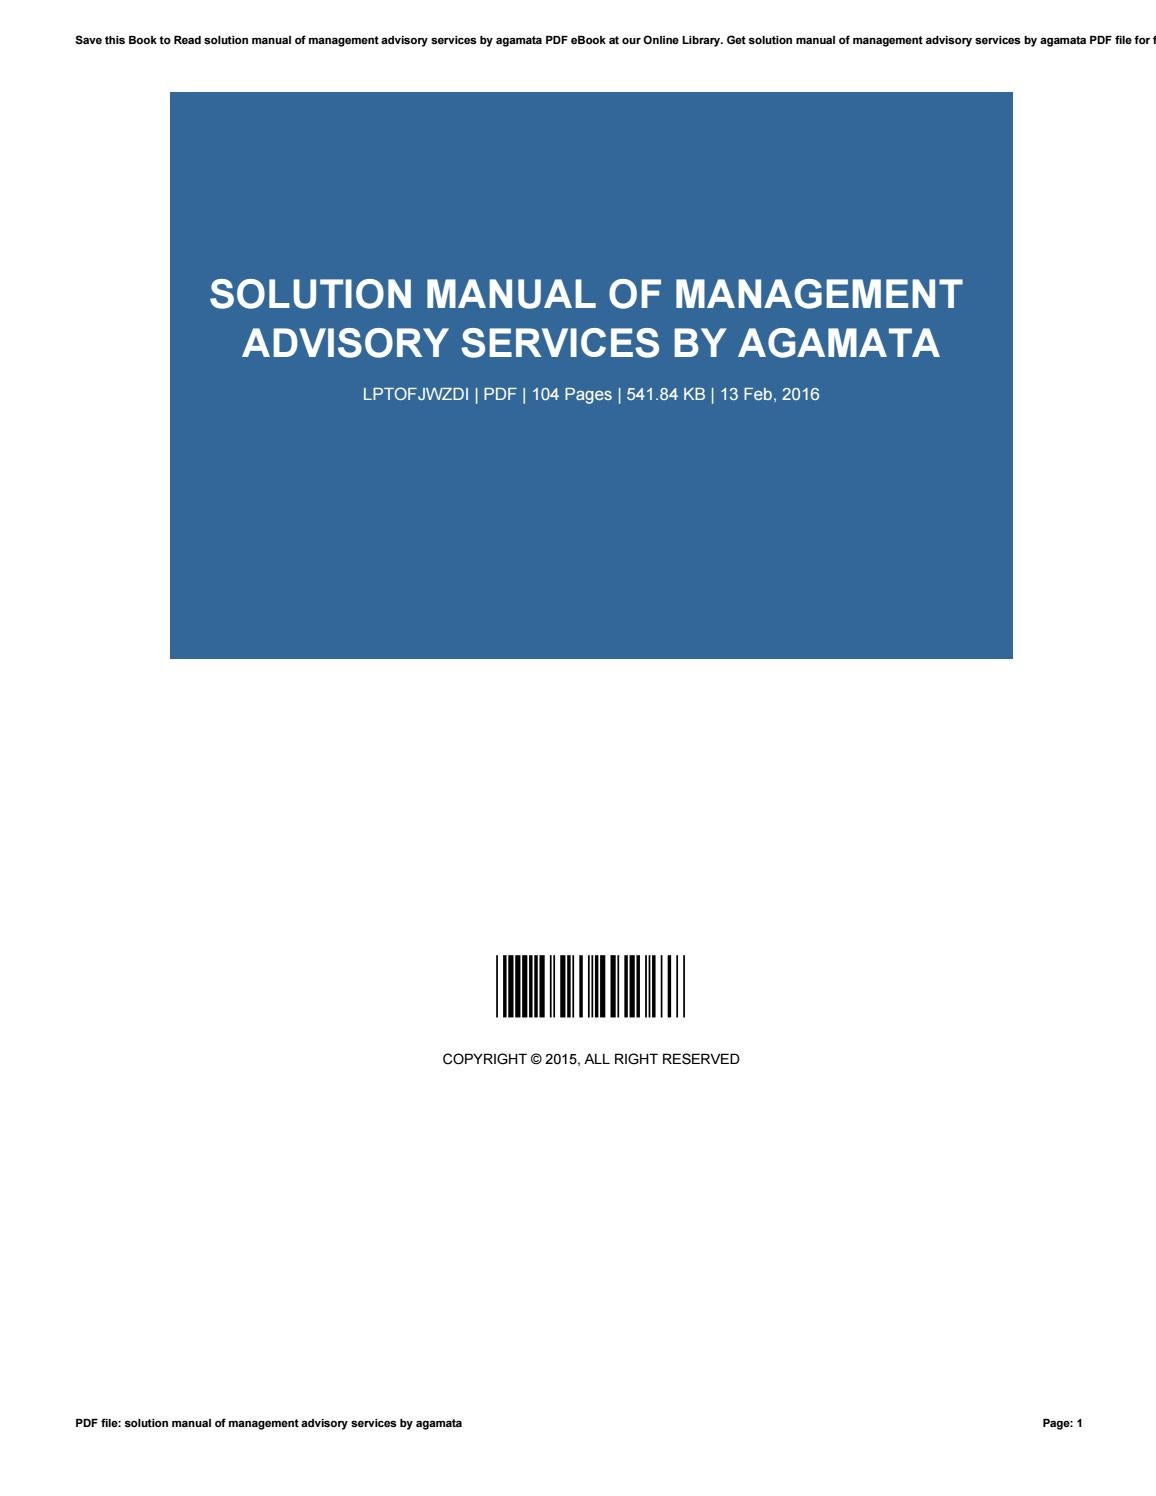 Solution manual of management advisory services by agamata by  ErnestSpradlin4346 - issuu